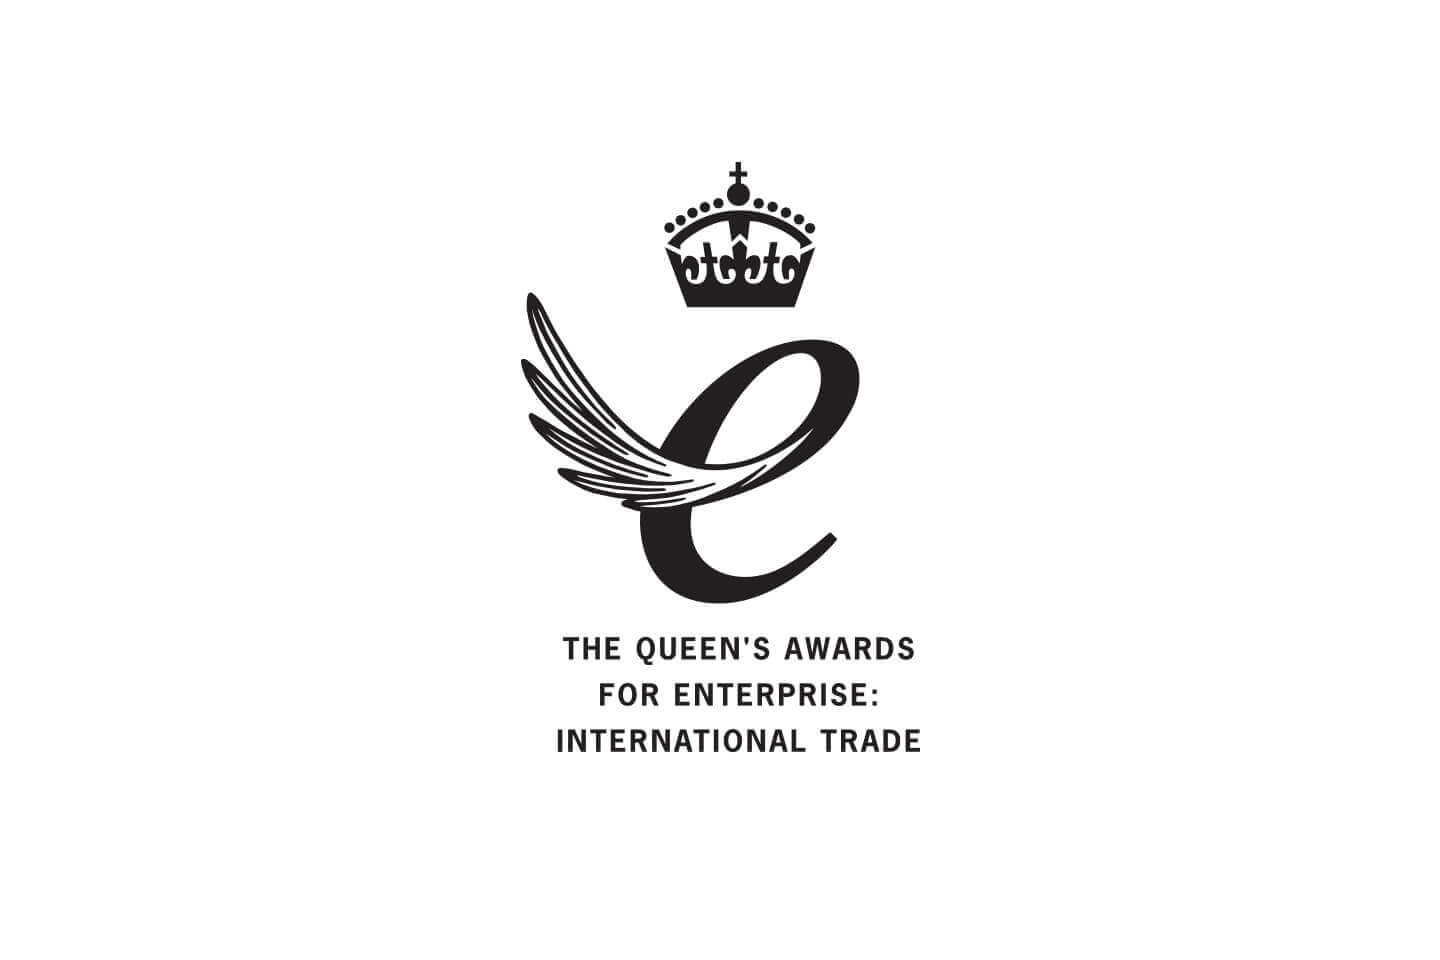 The Queen's Awards